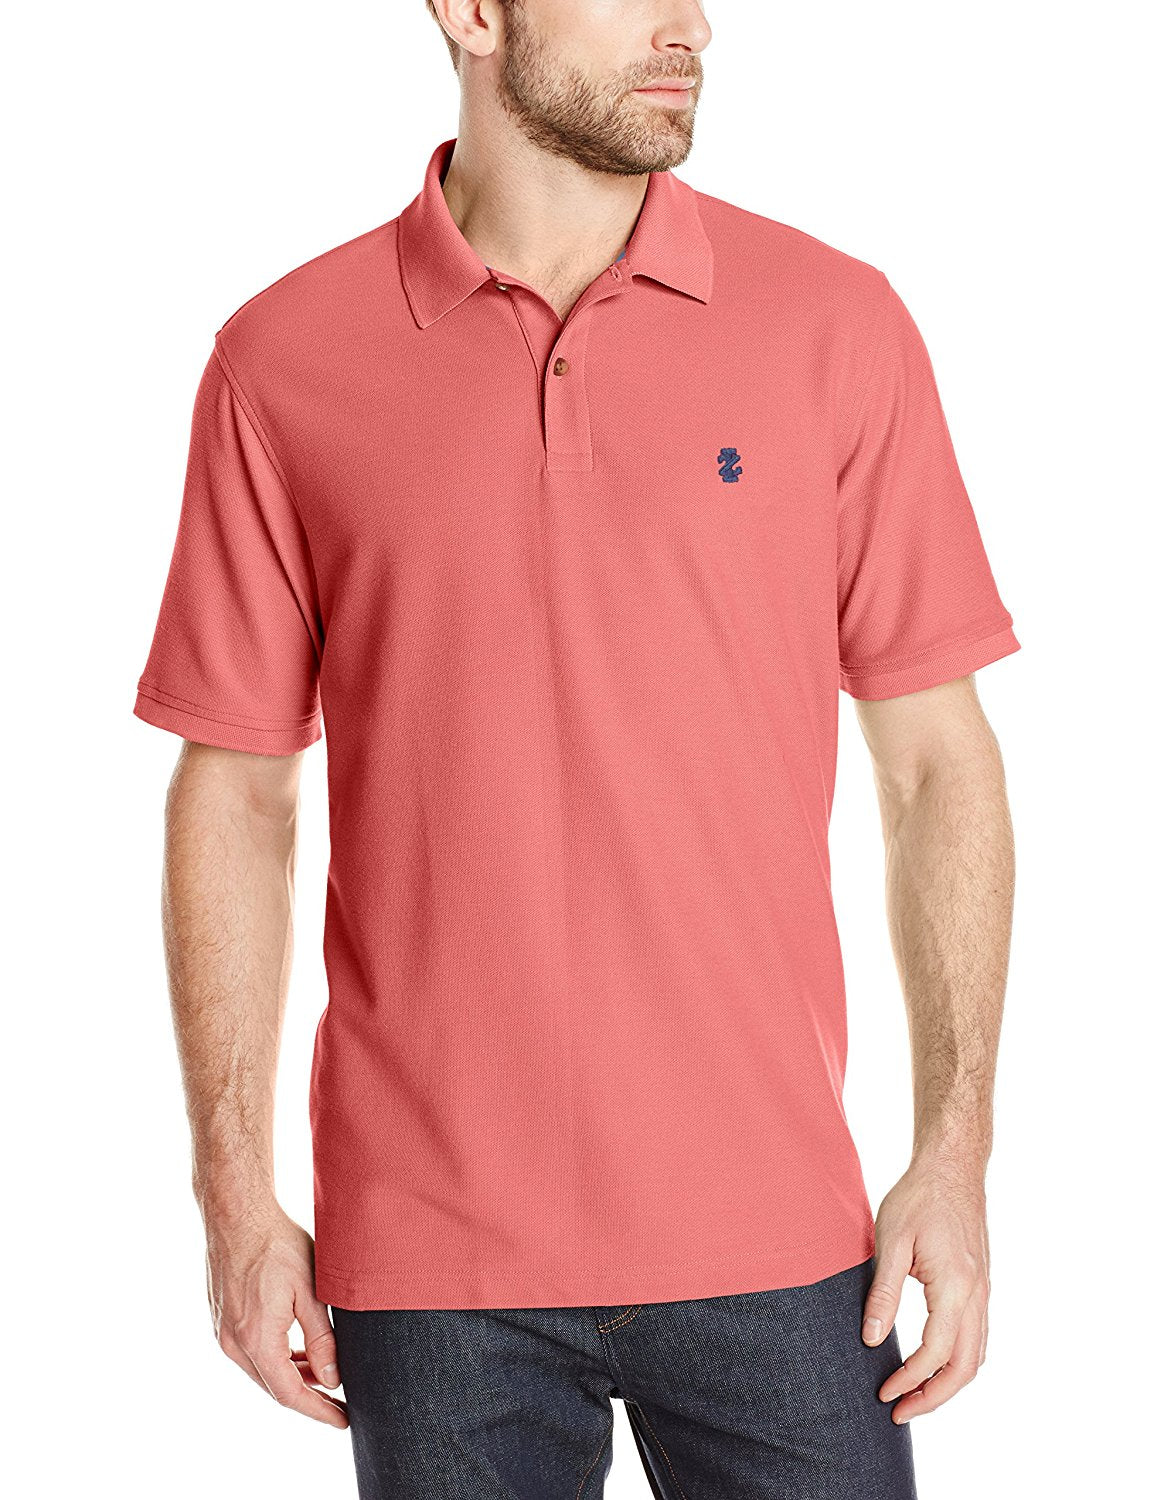 3365be53 IZOD Men's Advantage Performance Solid Polo, Rapture Rose, 2X-Large –  Retail Trunk